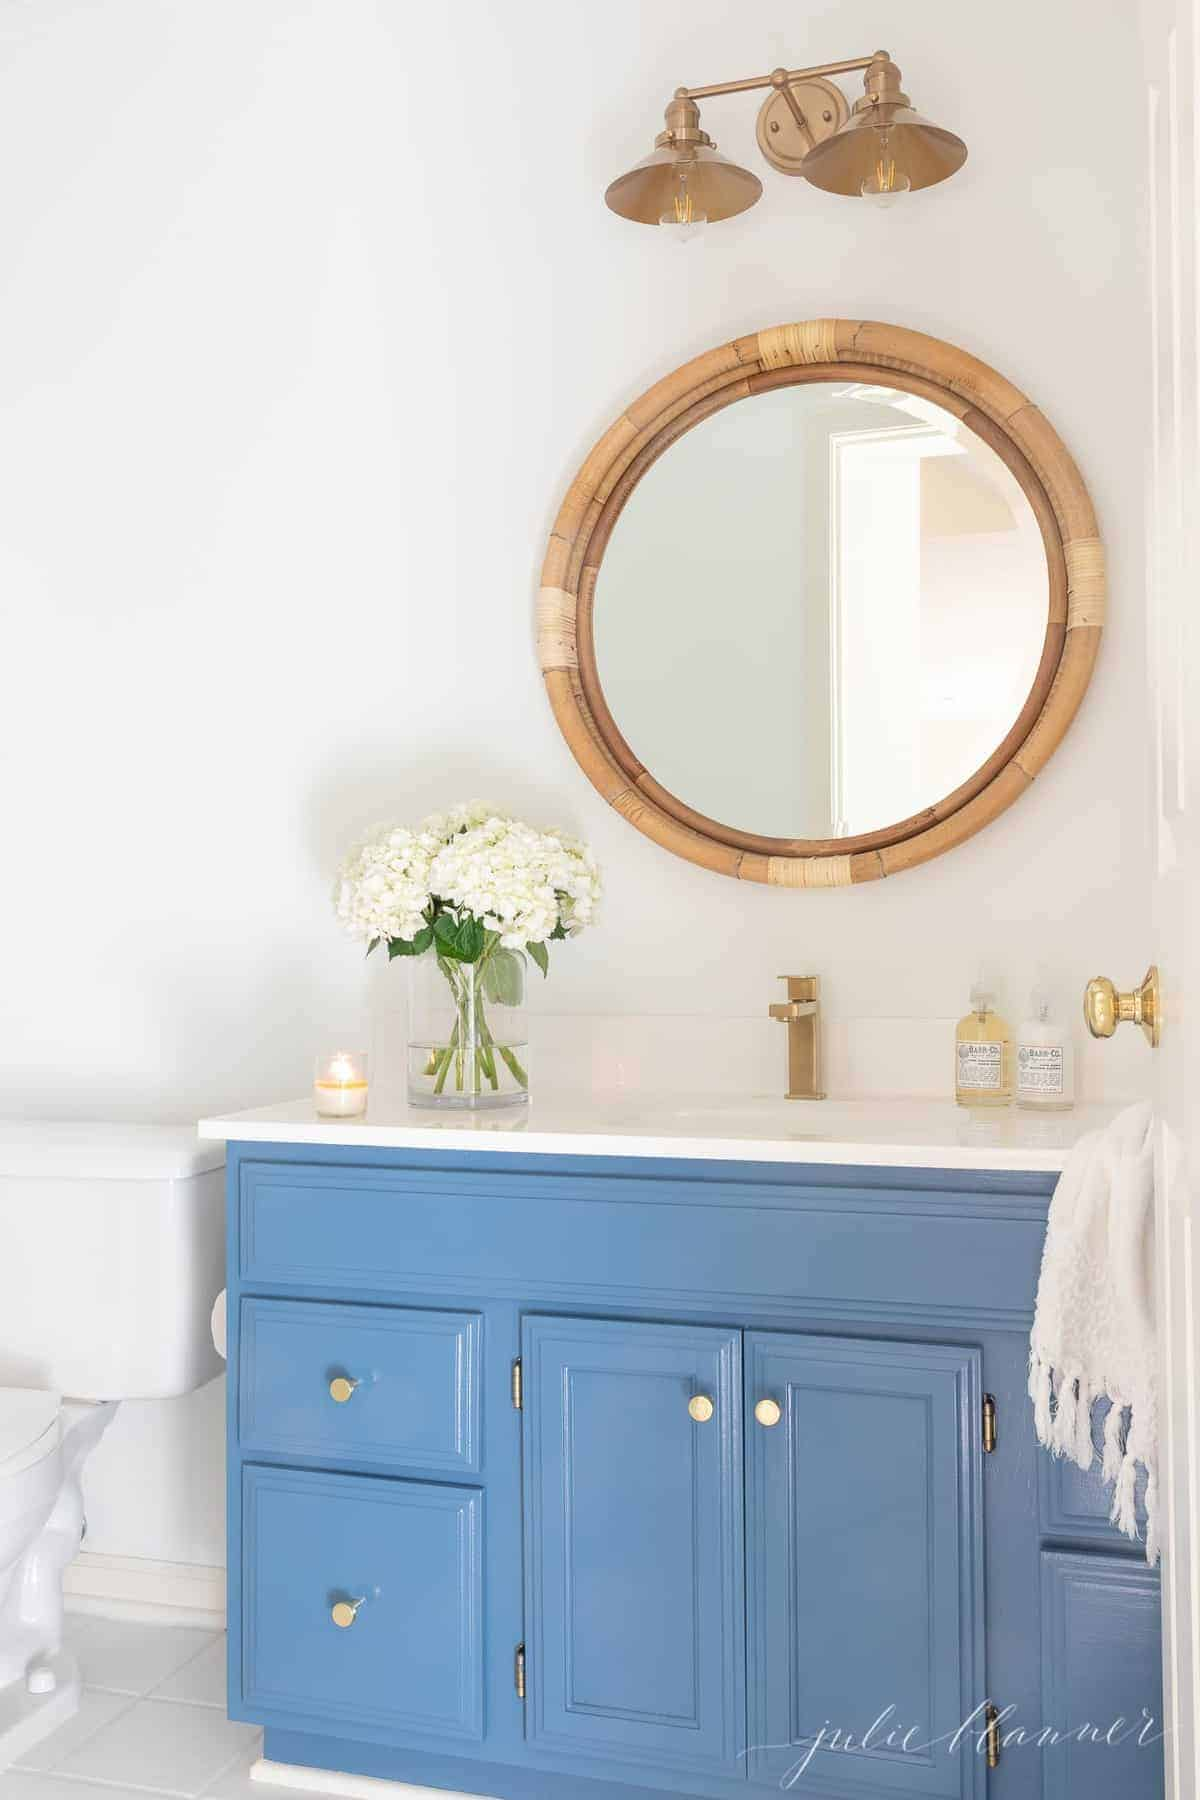 A nautical style bathroom with a blue vanity, gold cabinet door knobs.